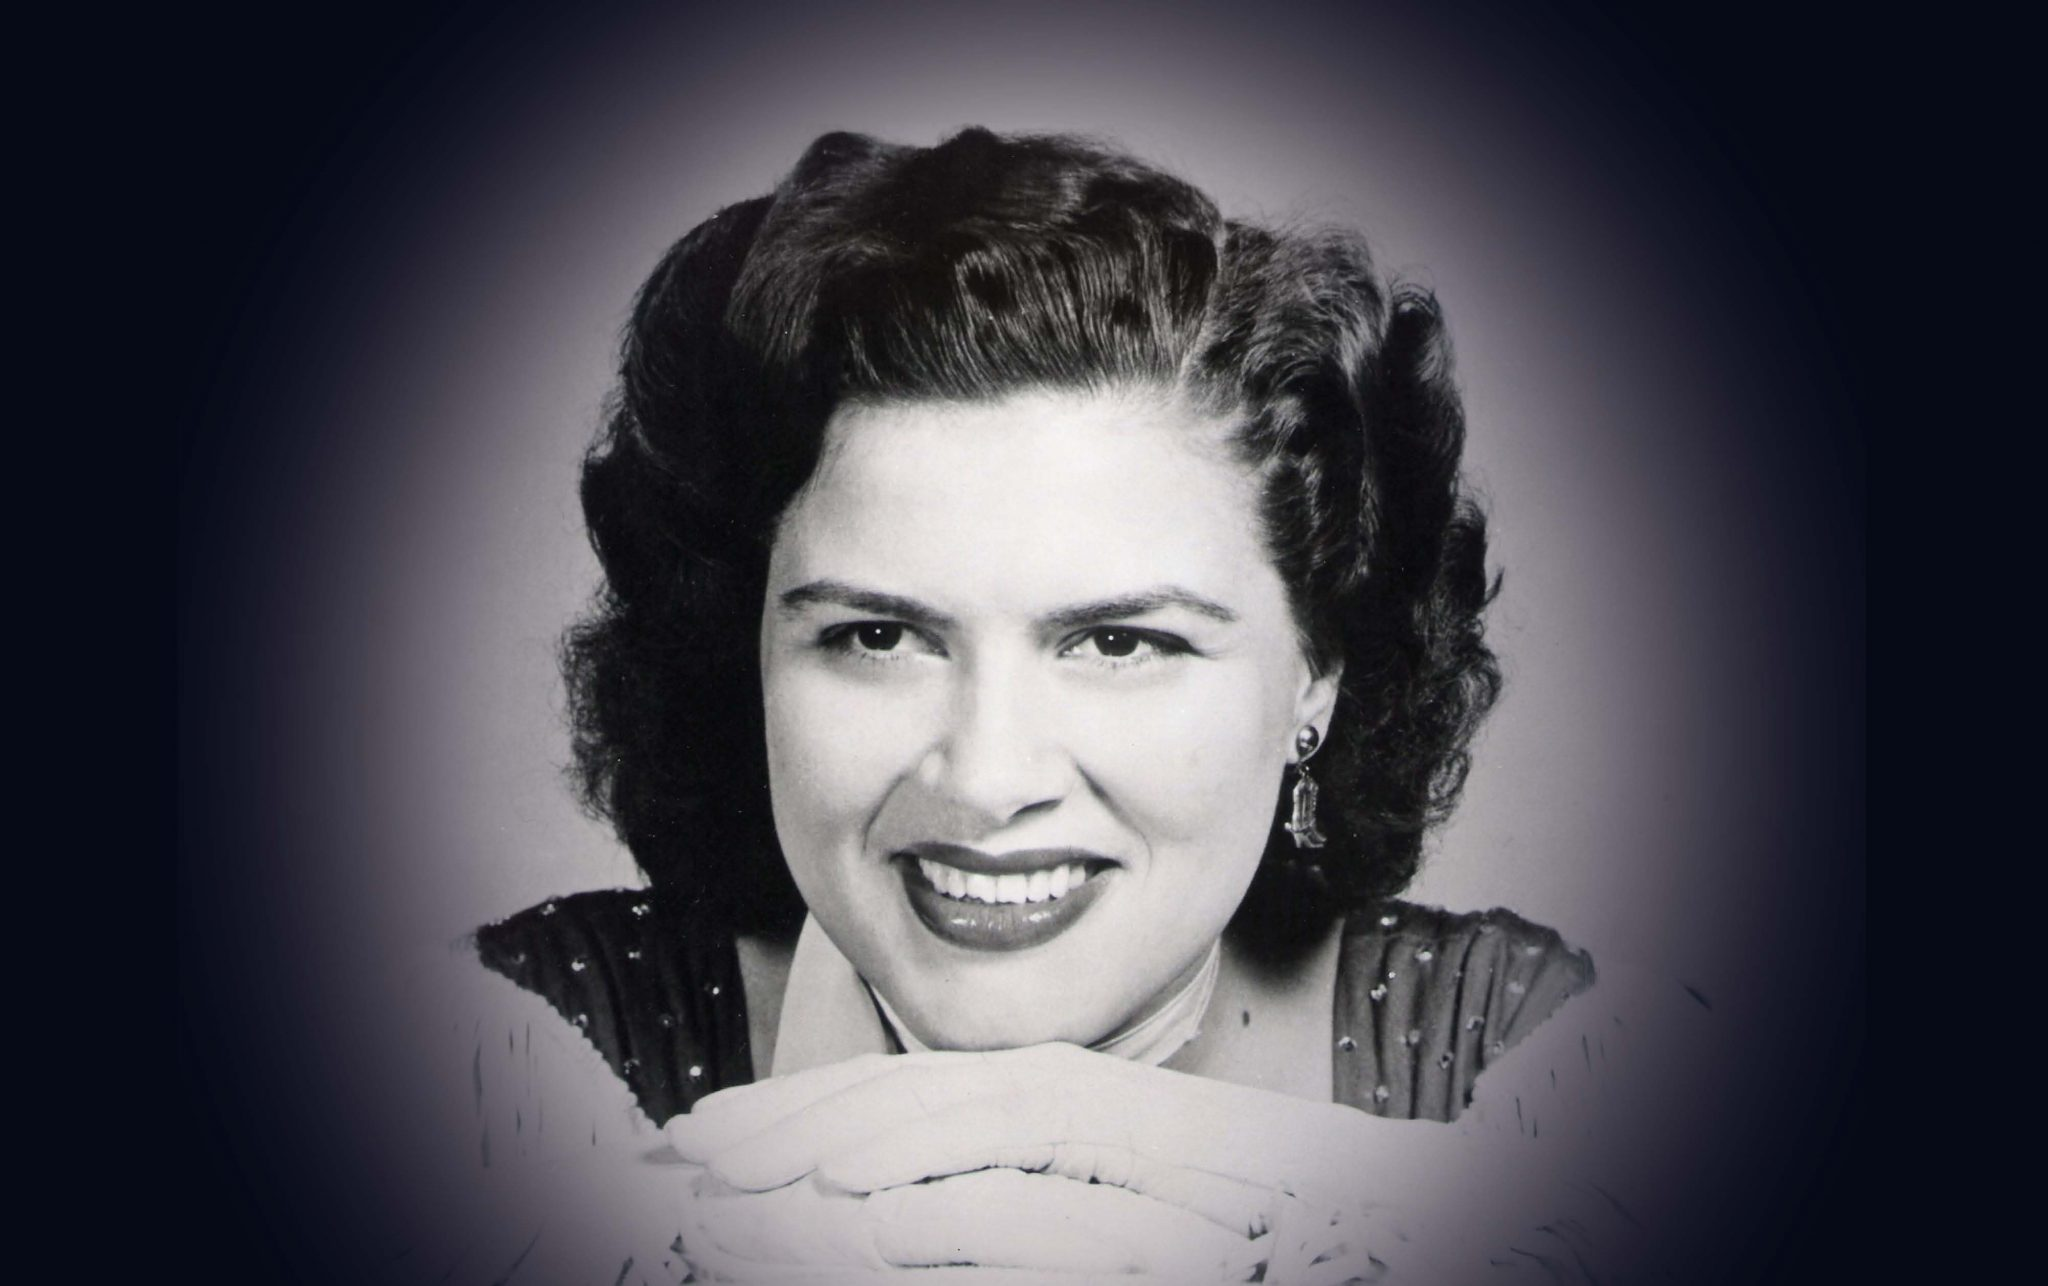 A Closer Walk With Patsy Cline – The Arts Club (Vancouver, BC) June 17 – August 1, 2021